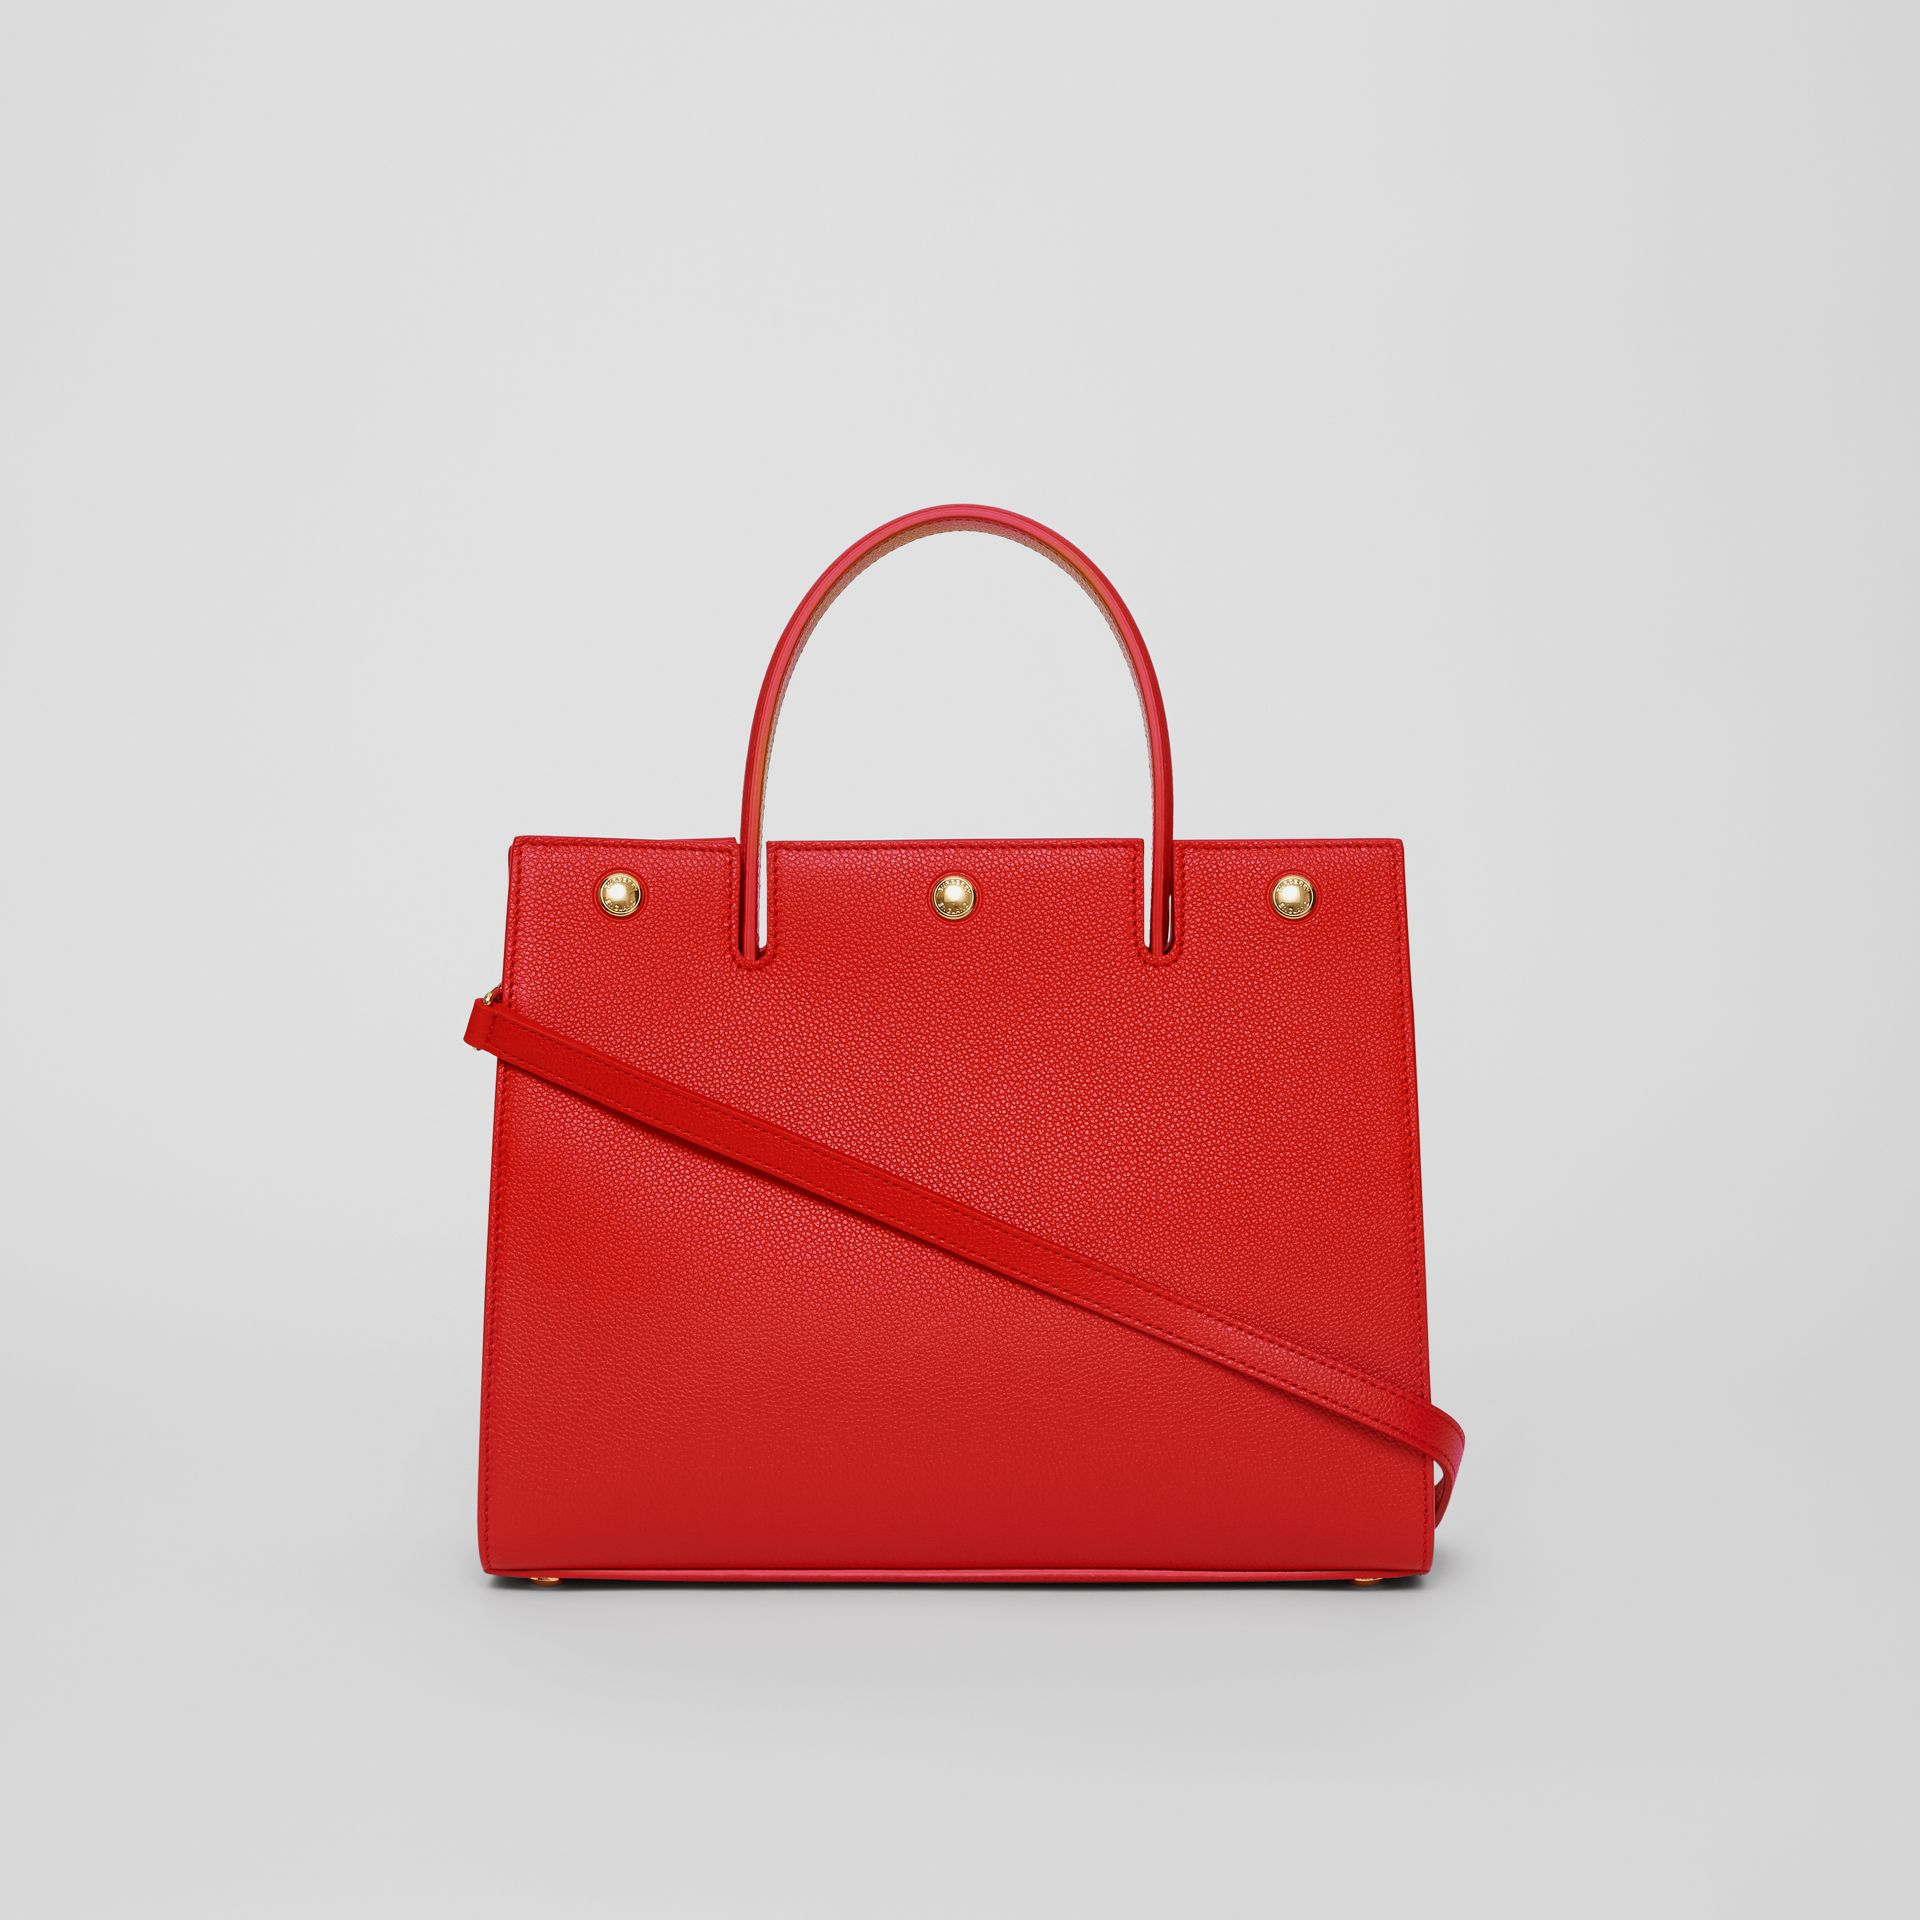 Small Leather Title Bag in Bright Red - Women | Burberry Singapore - gallery image 7